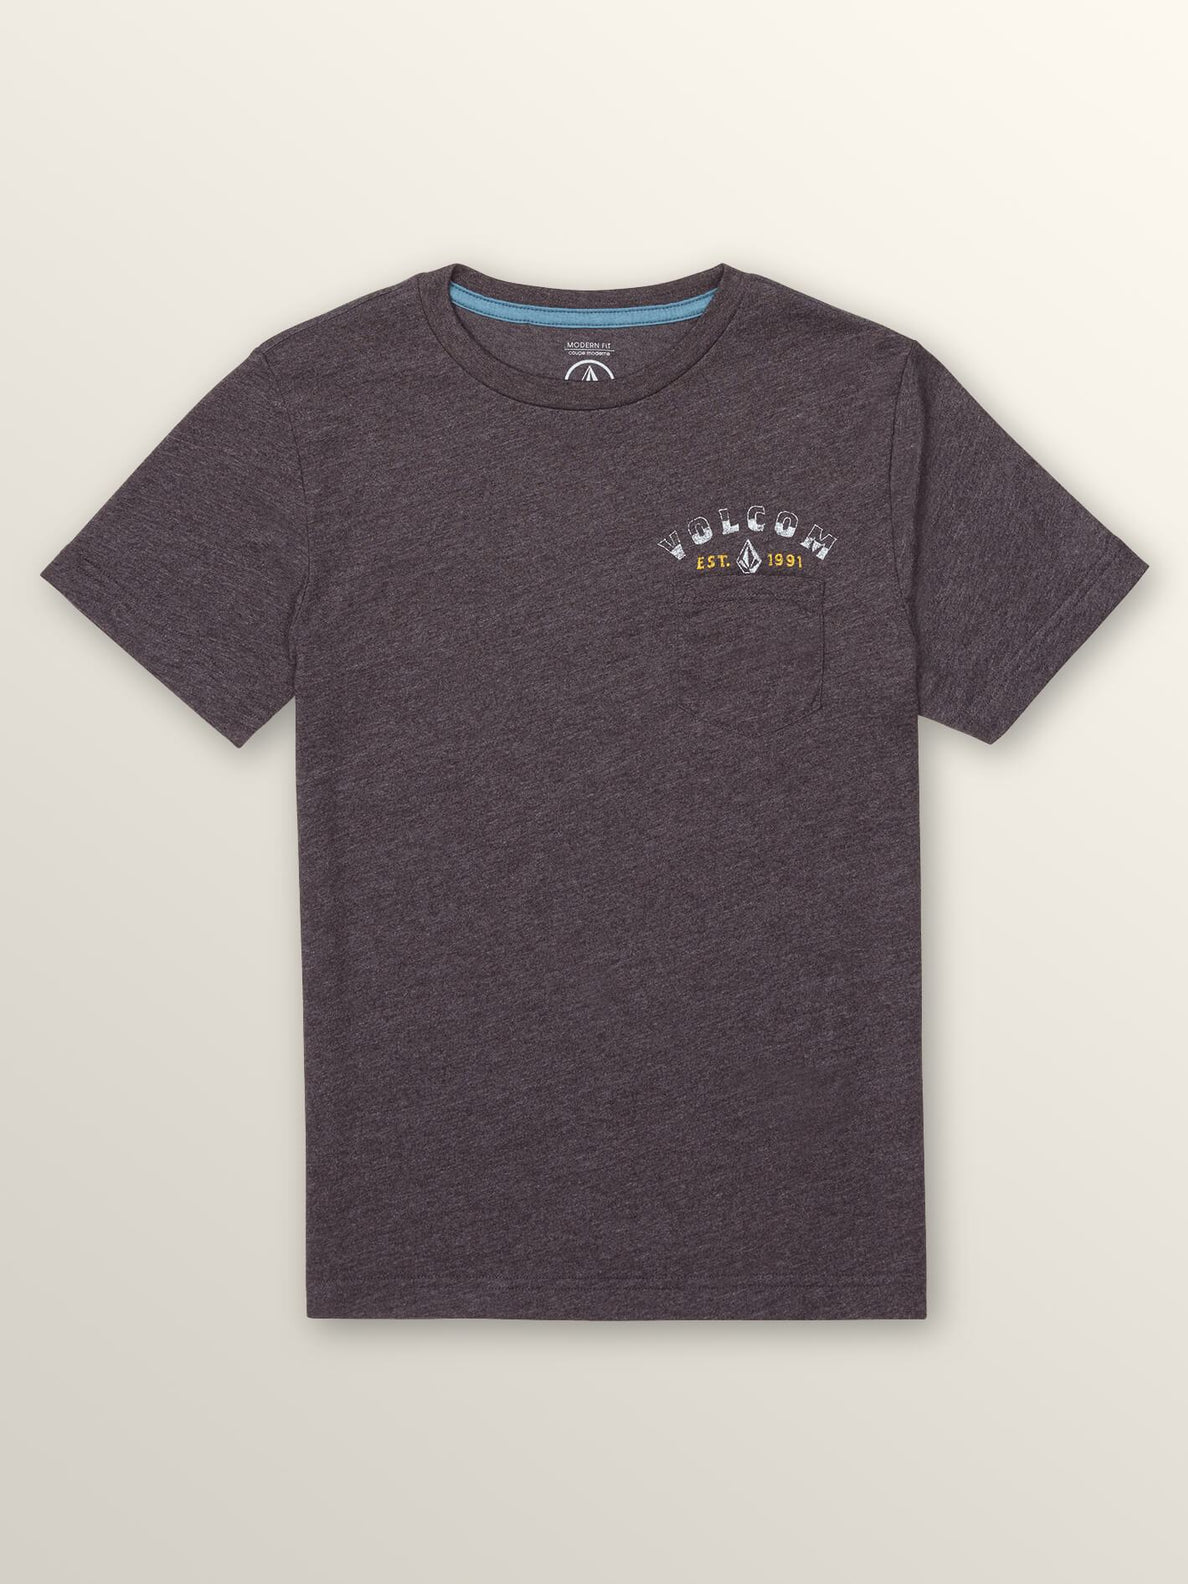 Big Boys Signer Short Sleeve Pocket Tee In Heather Black, Front View